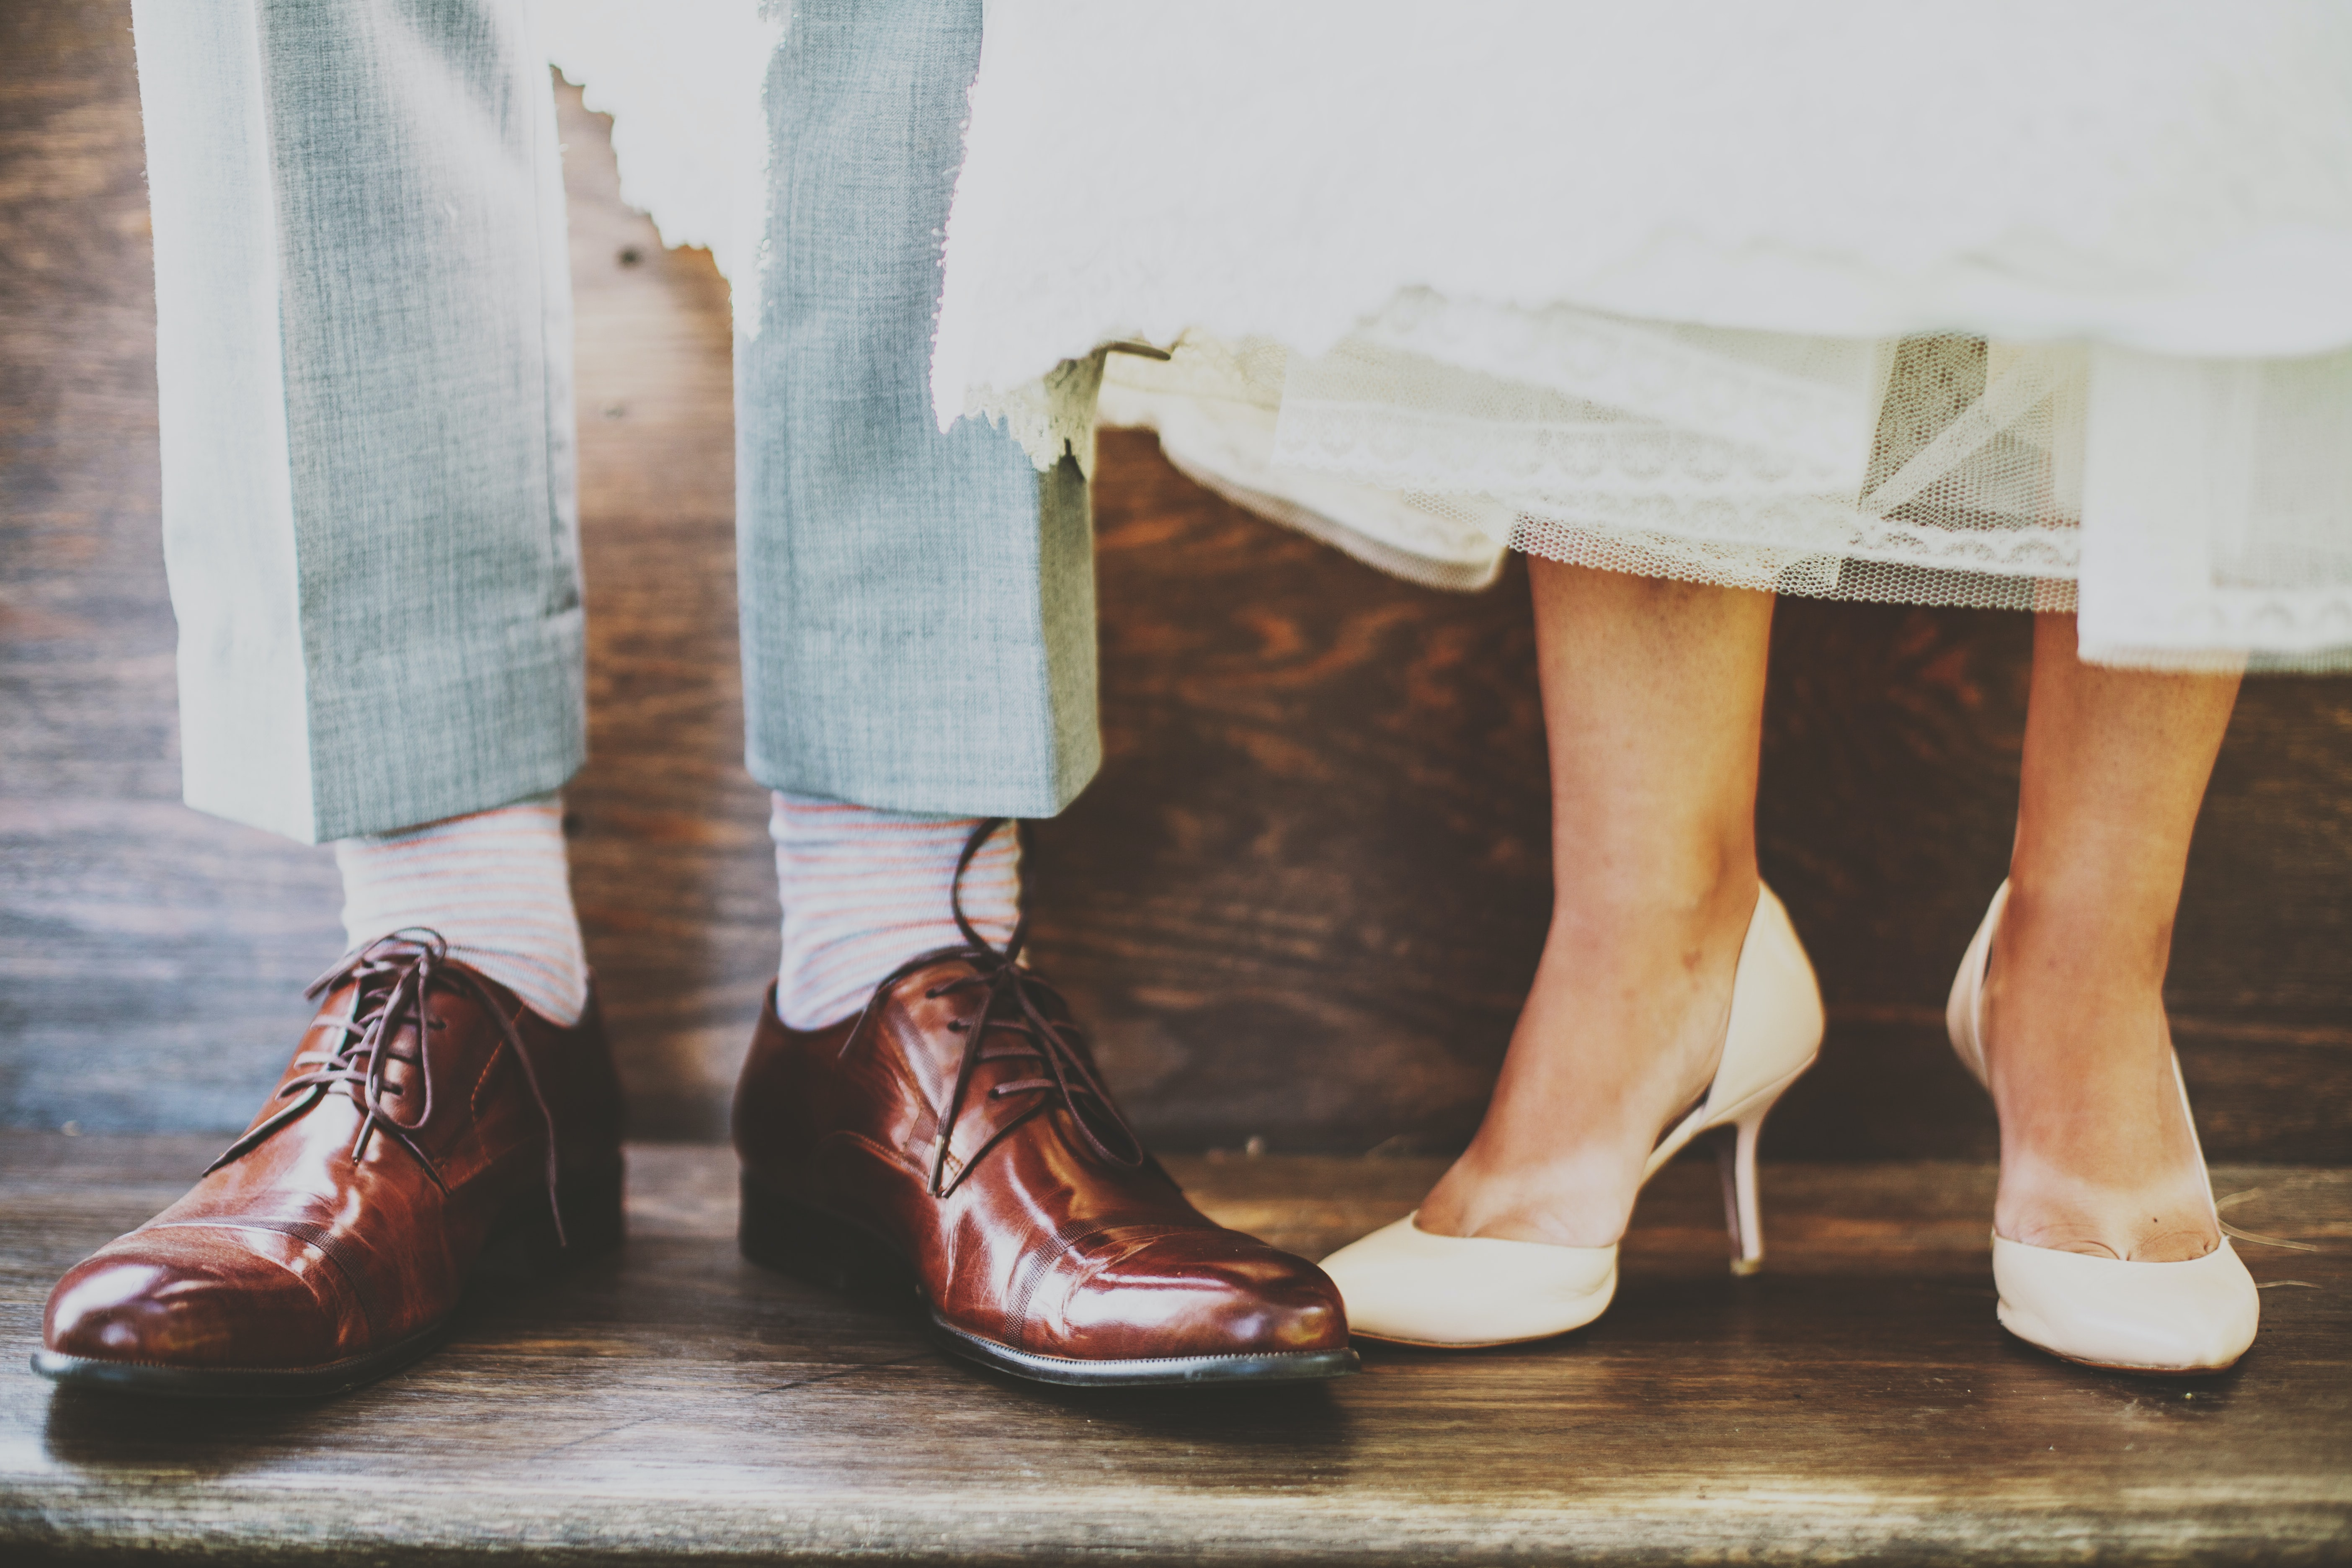 Shoes of a bride and groom illuminated under soft light